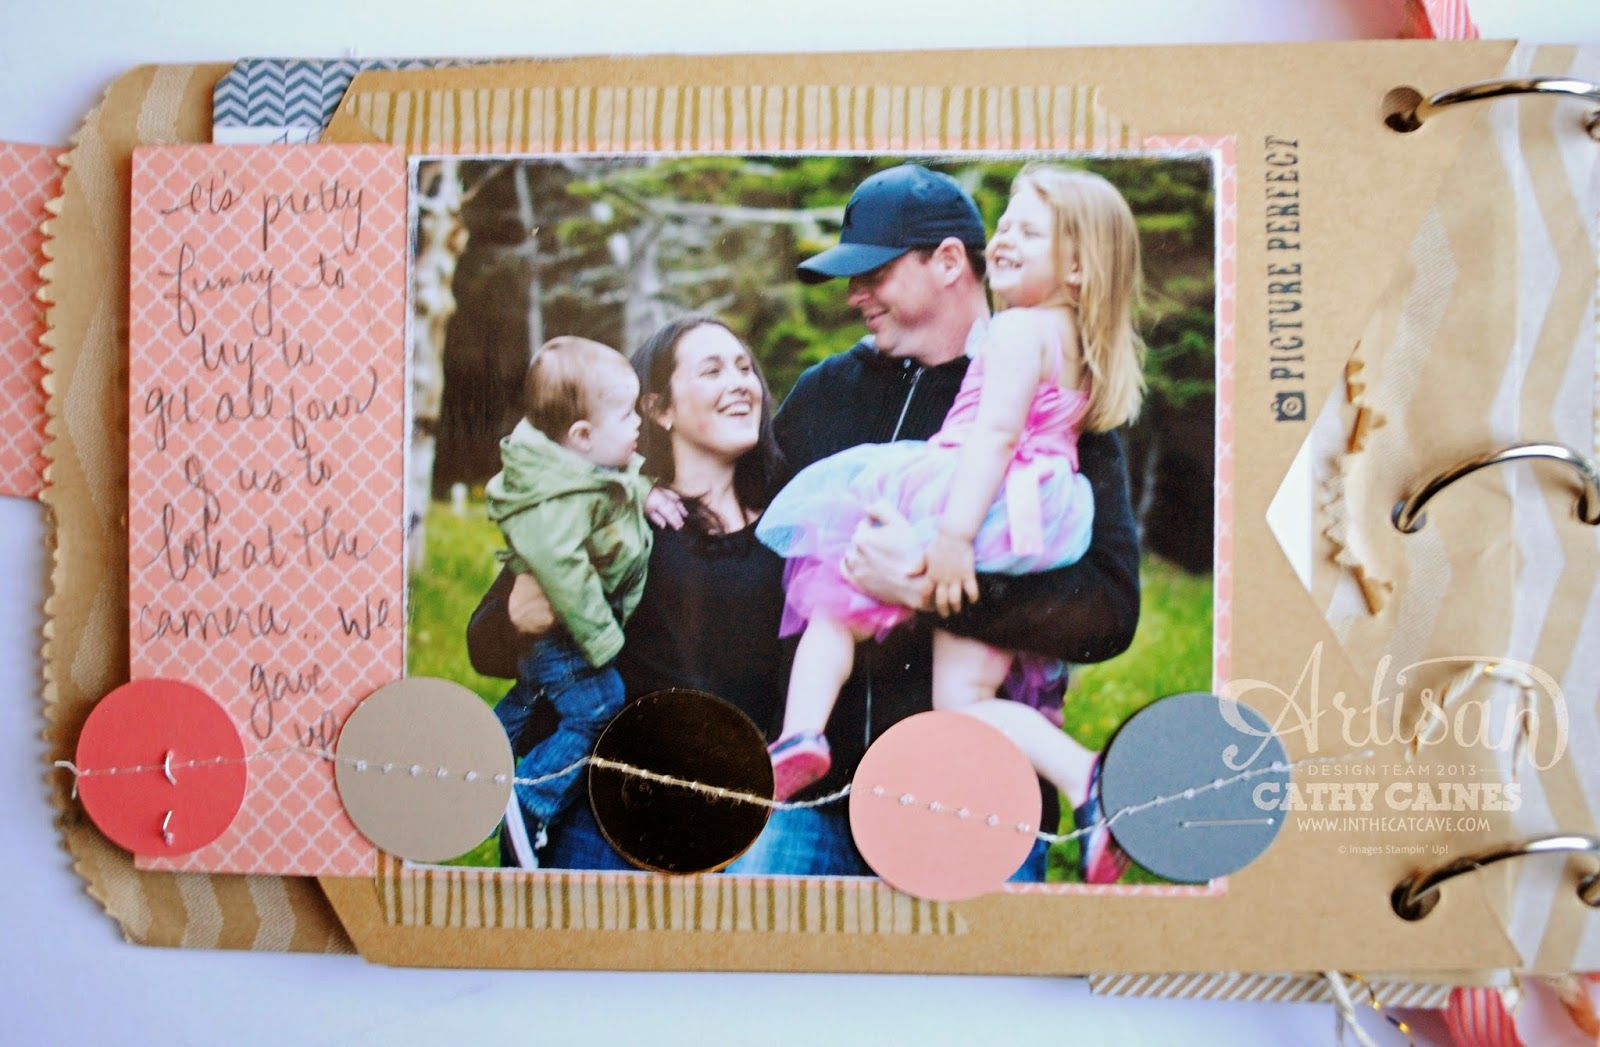 CELEBRATION BANNER MINI ALBUM | AWW by Cathy Caines @Stampin' Up!